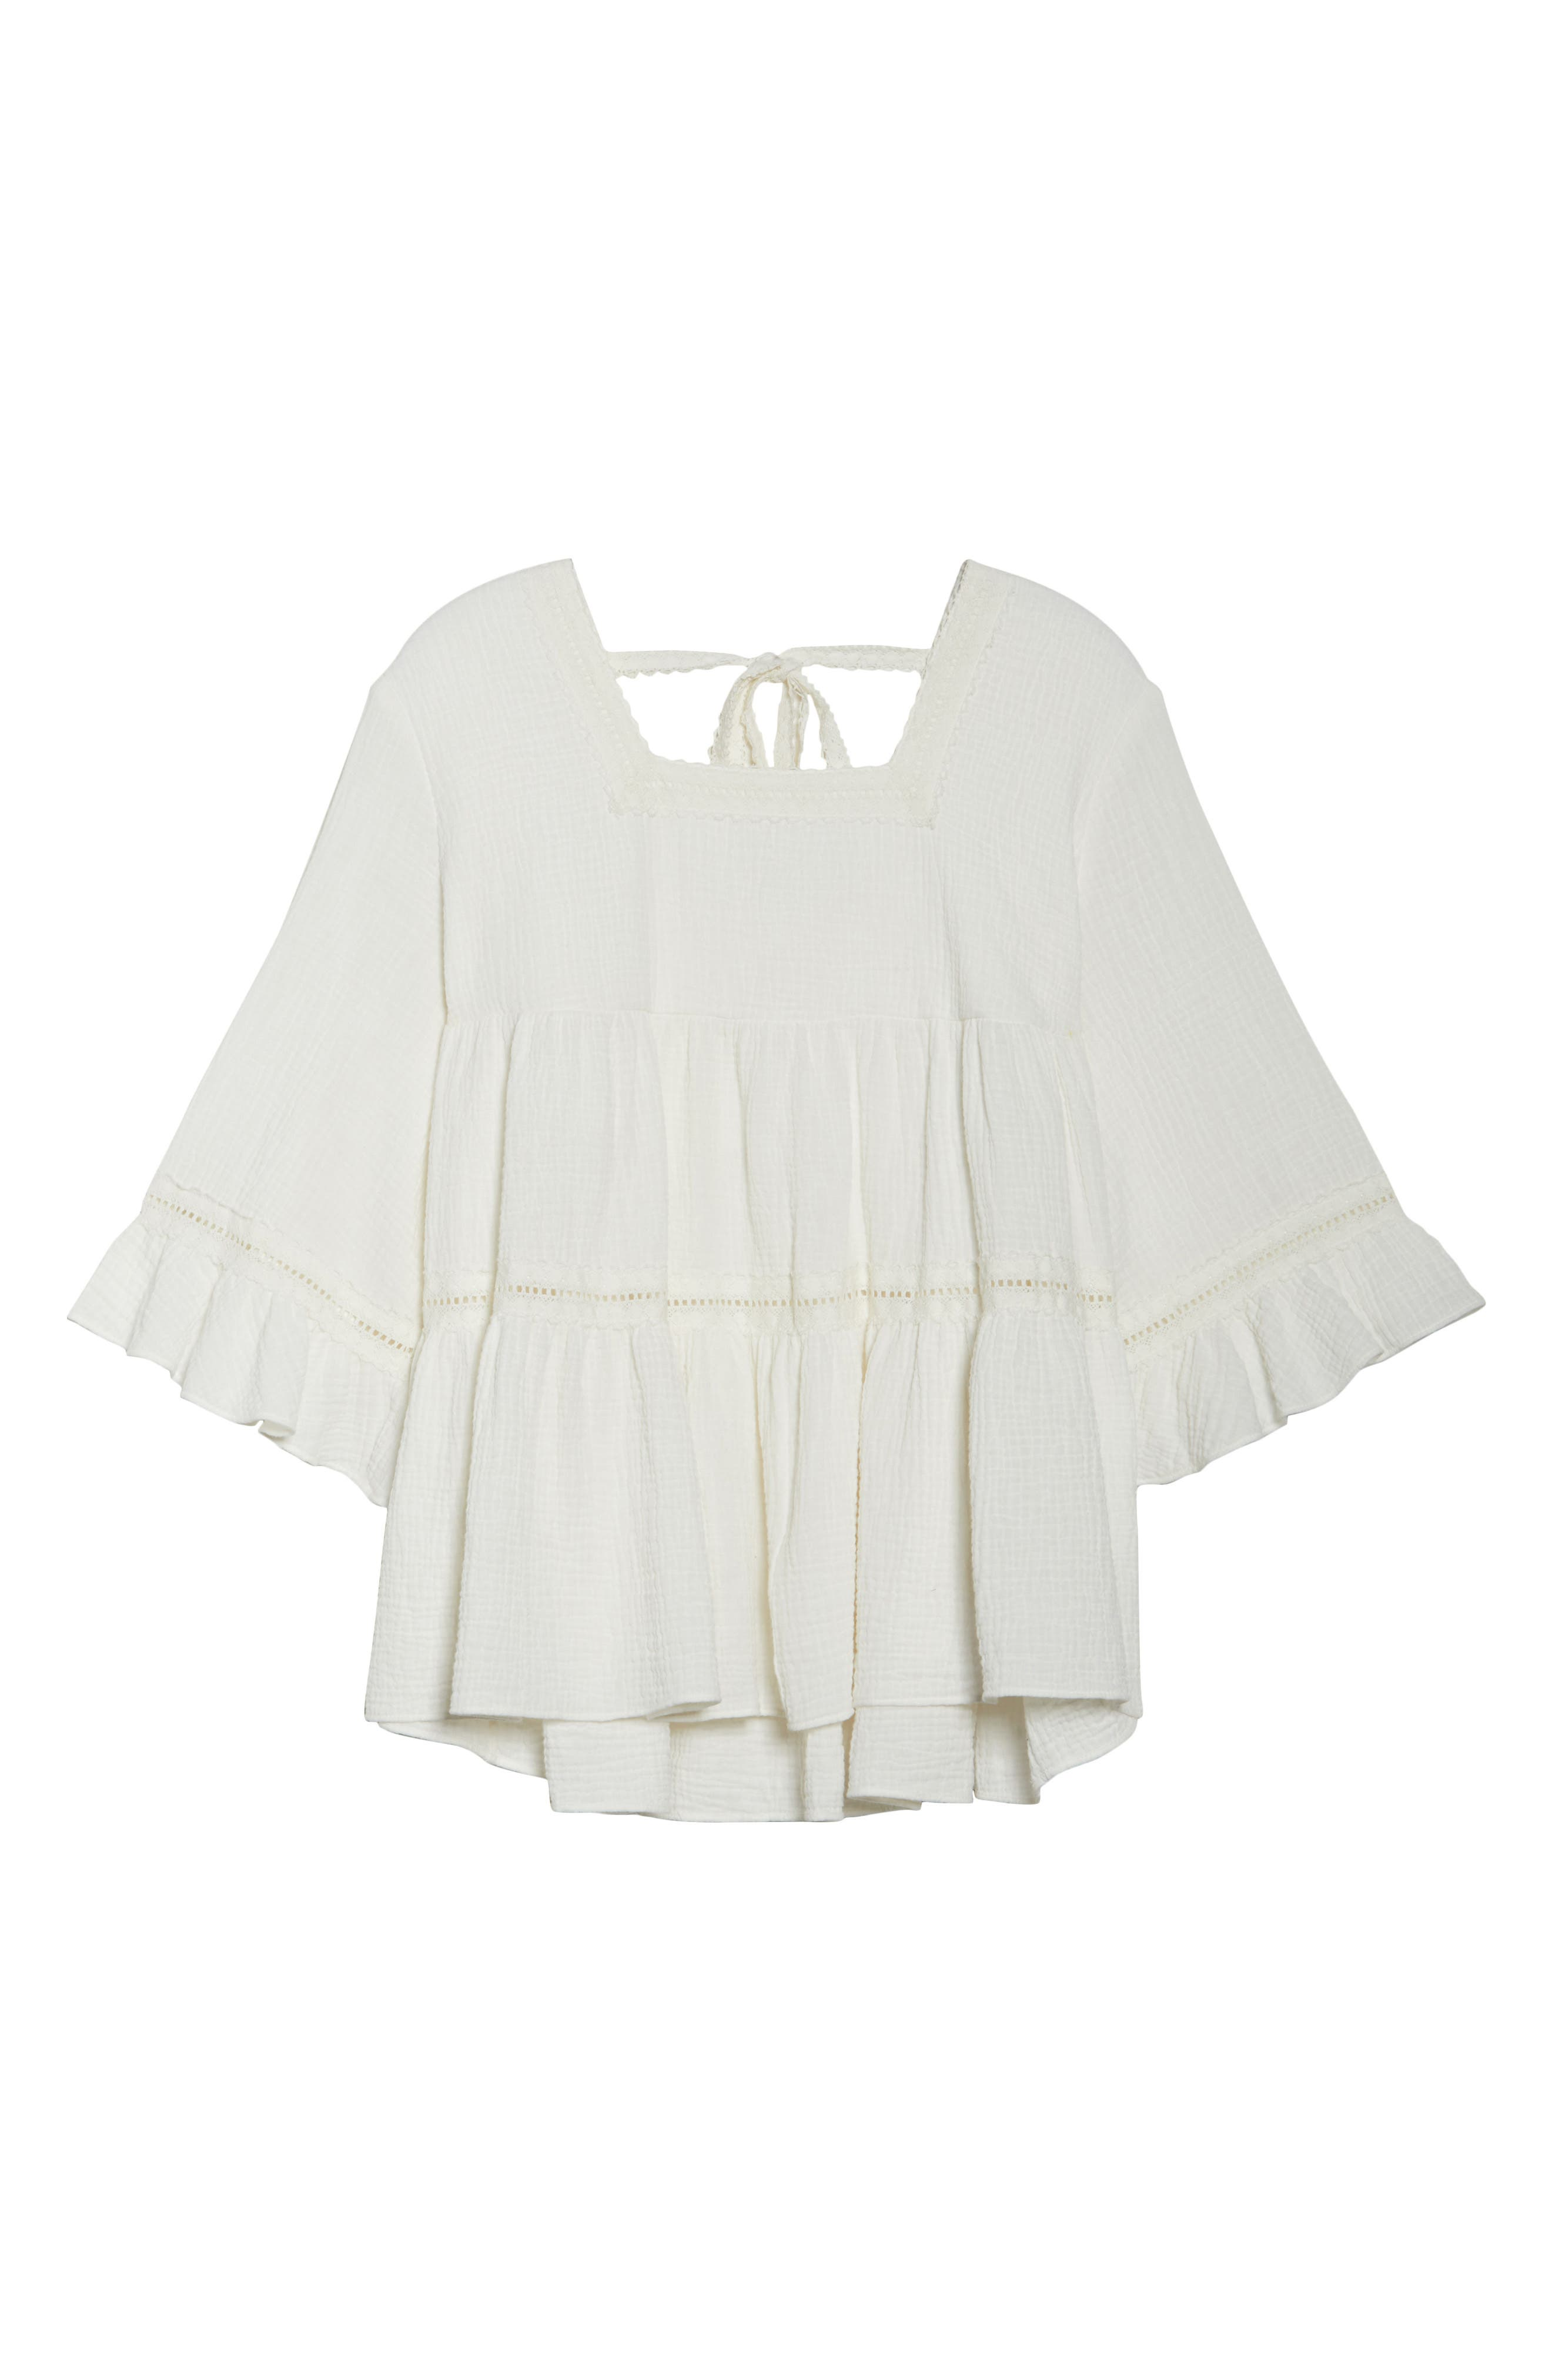 Lace Trim Gathered Top,                             Alternate thumbnail 7, color,                             Ivory Cloud